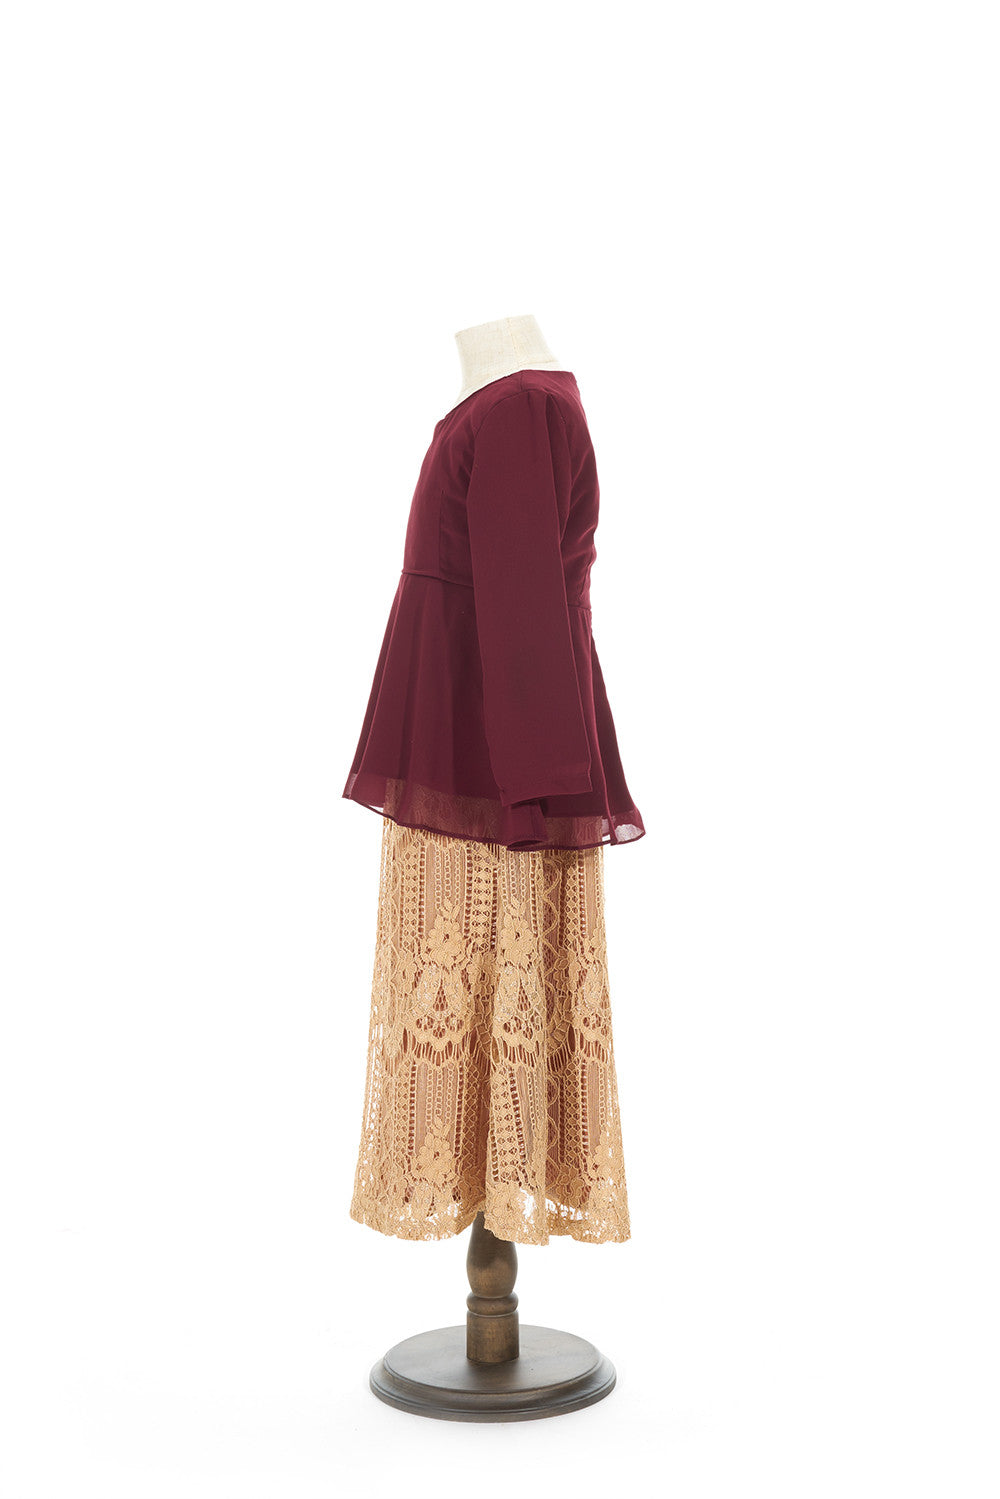 Petite Peplum Top with Venetian Lace Skirt in Maroon